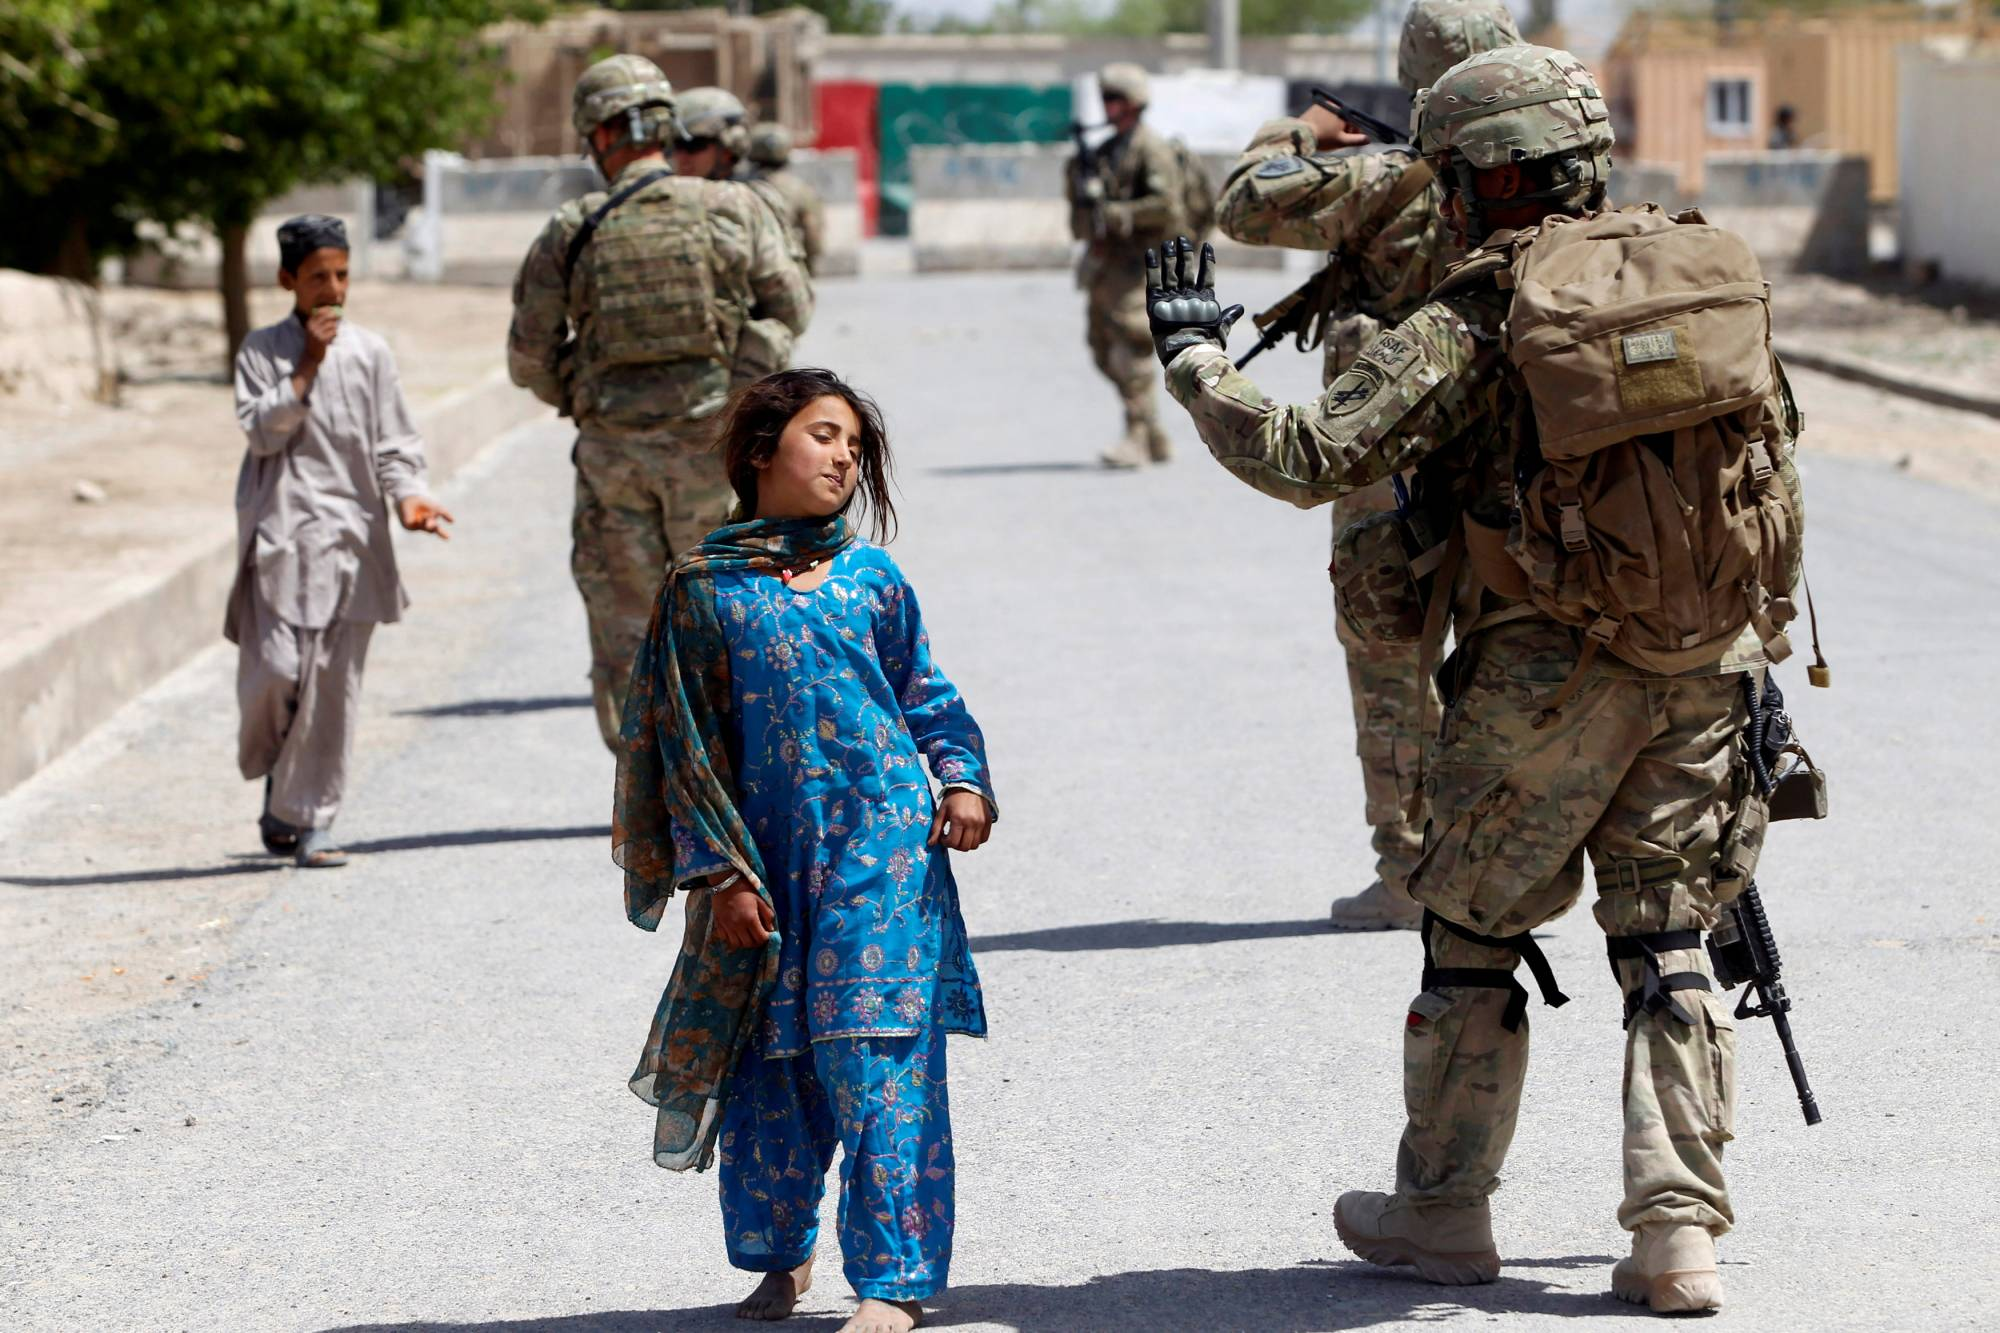 U.S soldiers conduct a patrol in Kandahar province in April 2012. U.S. allies like Japan should take heart in the withdrawal decision as it means Washington will no longer be distracted by the 'forever war.'   REUTERS